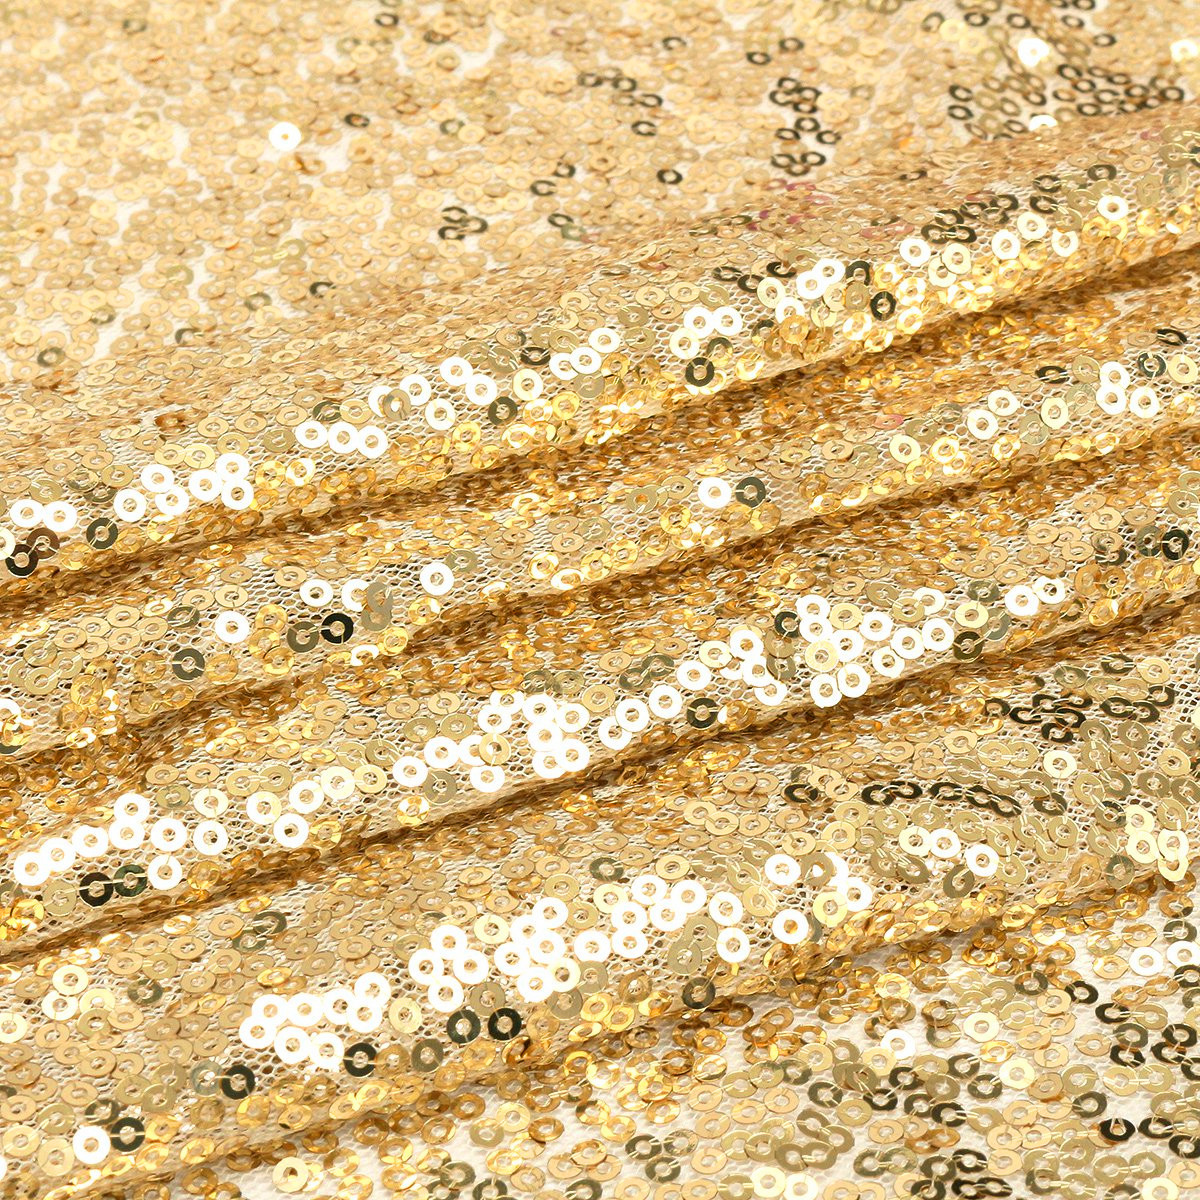 4x6ft Champagne gold Sequin Fabric Curtain Photography Background Backdrop Wedding Party Photobooth Decor